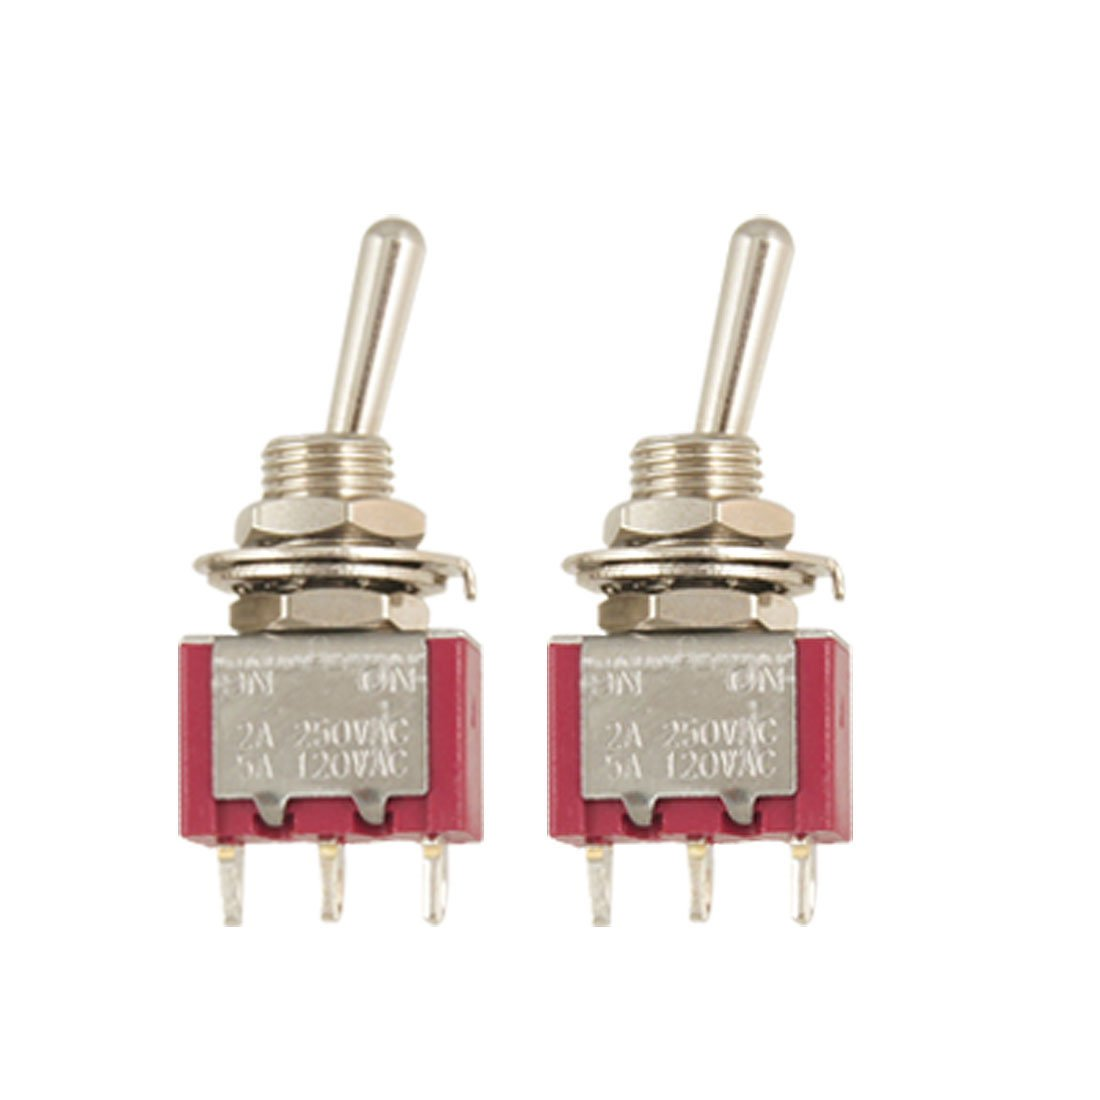 2-pcs-single-pole-double-throw-onon-toggle-switch-ac-250v2a-125v5a